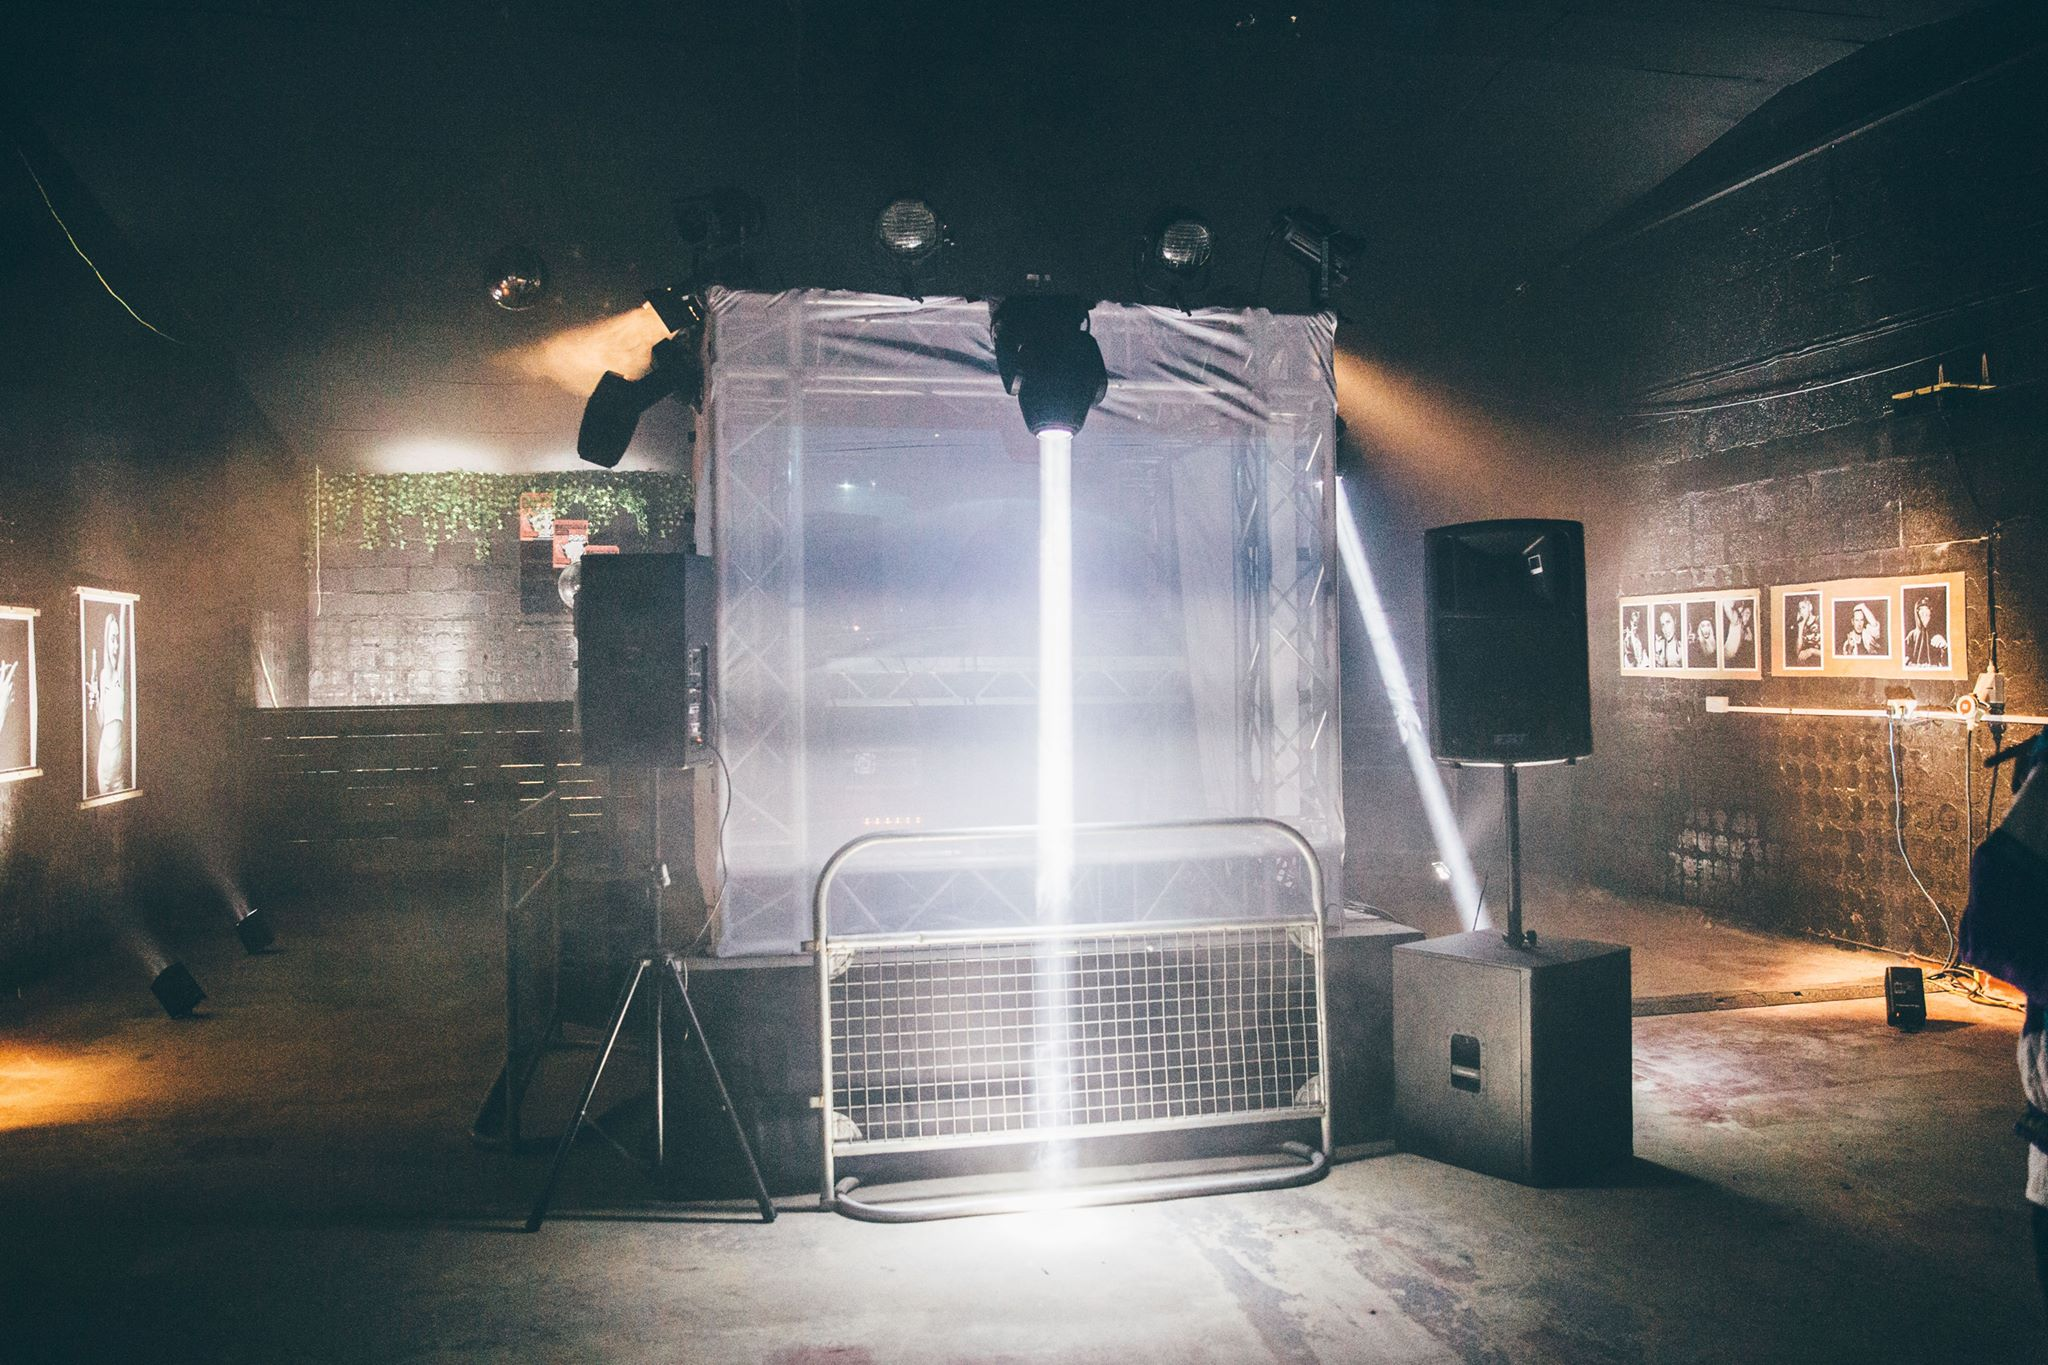 Pillars Exhibition – A Unique Blend of Photography and Rave